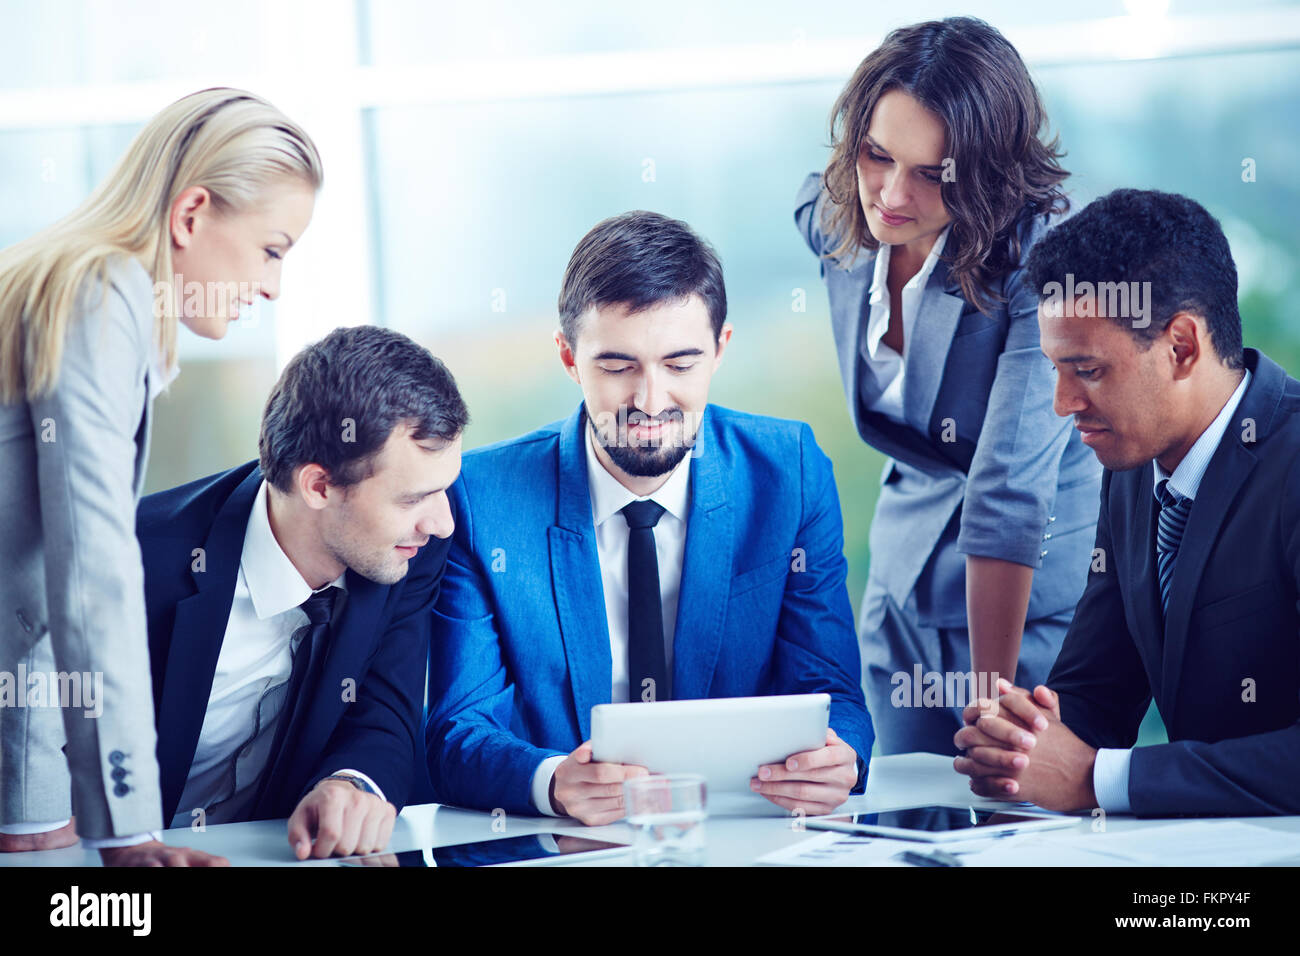 Group of business people working together - Stock Image